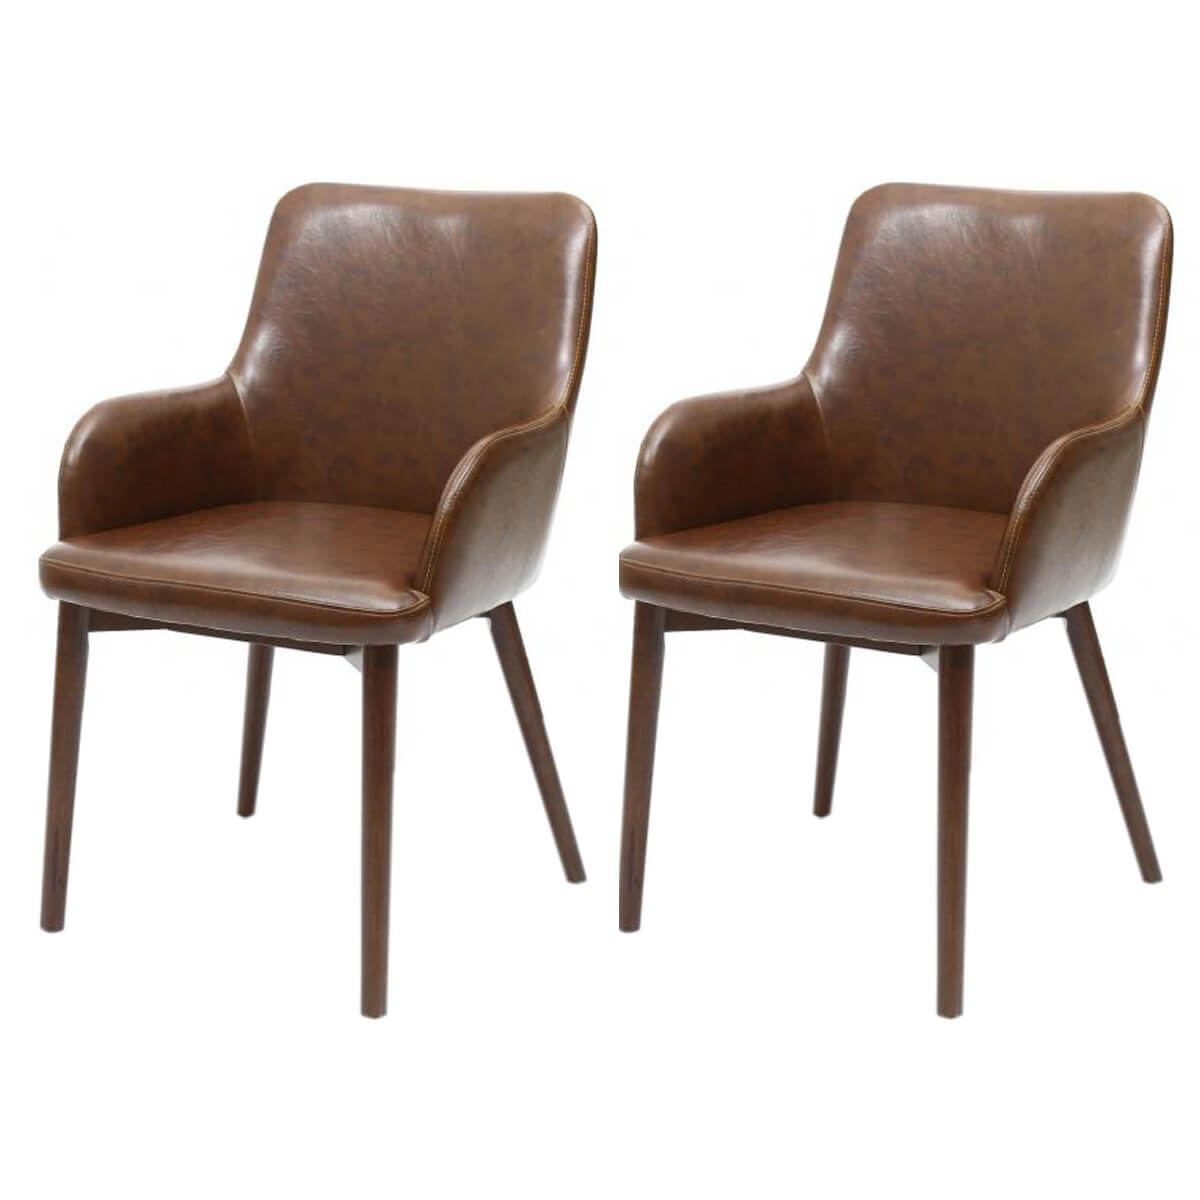 Leather Dining Chairs Sidcup Vintage Brown Leather Dining Chairs Free Delivery